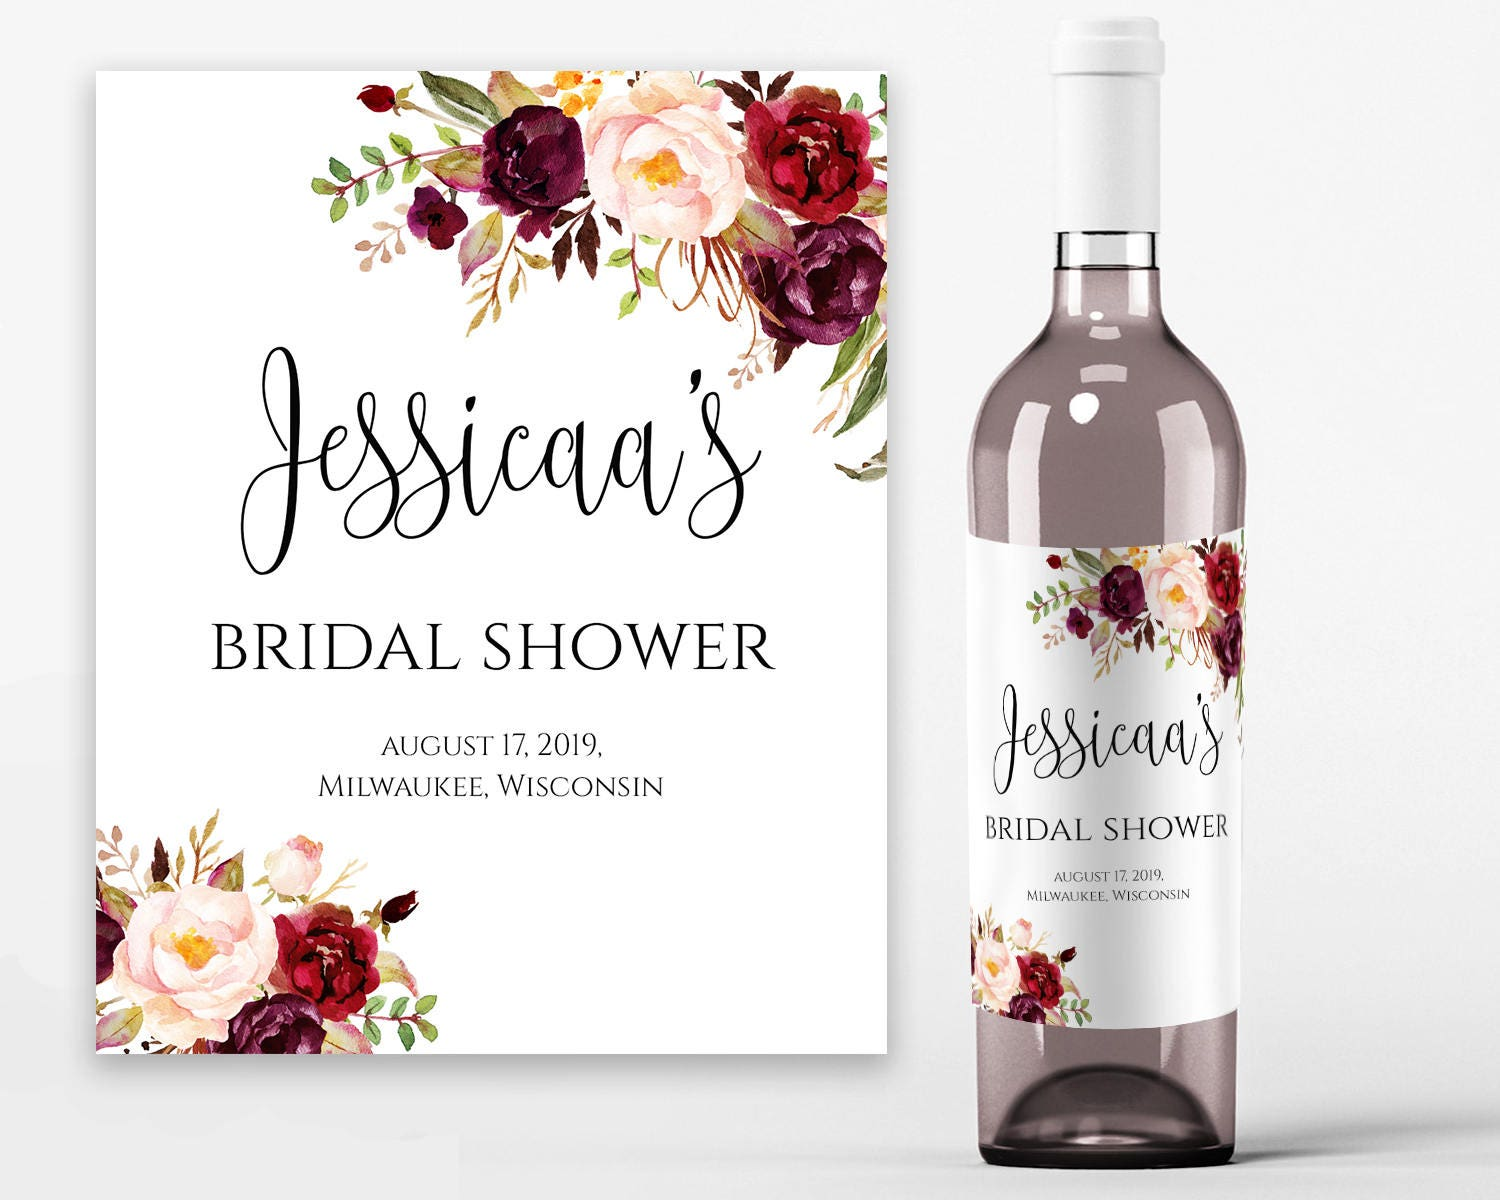 Wine label template yelomdiffusion bridal shower wine labels bridal wine printable wine label template maxwellsz